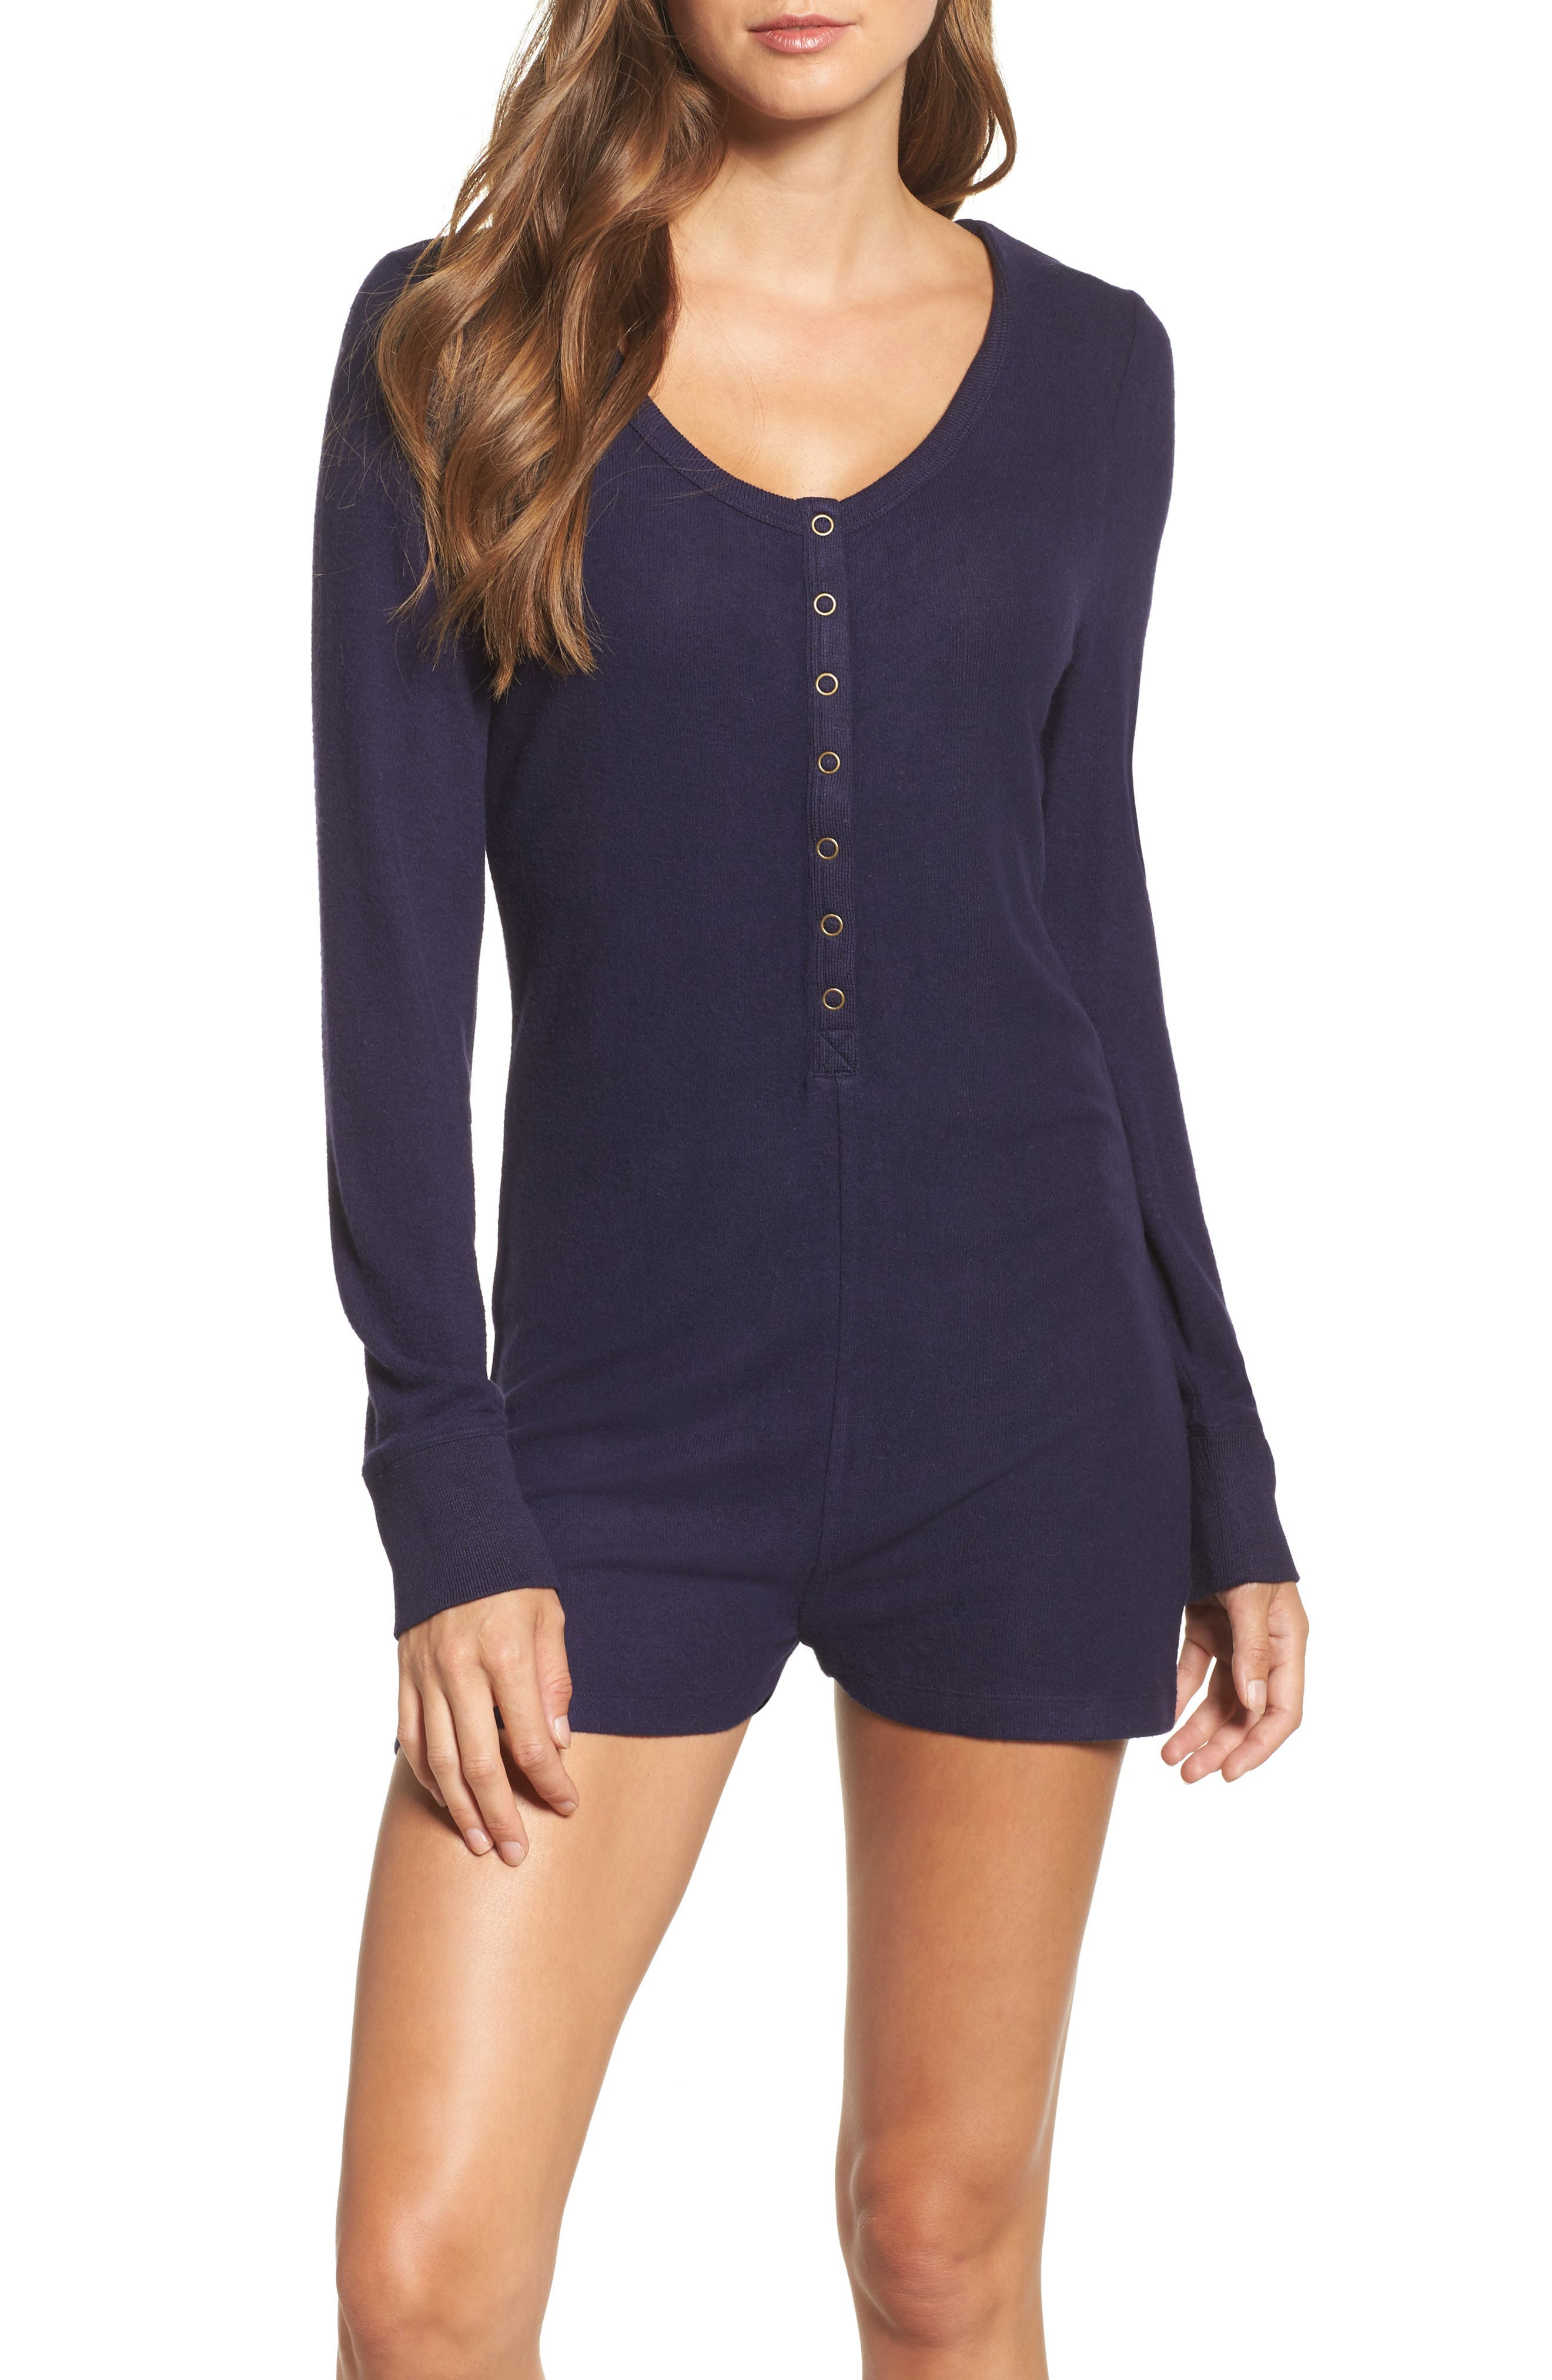 Cozy Lounge Romper,                         Main,                         color, Navy Dusk Marl